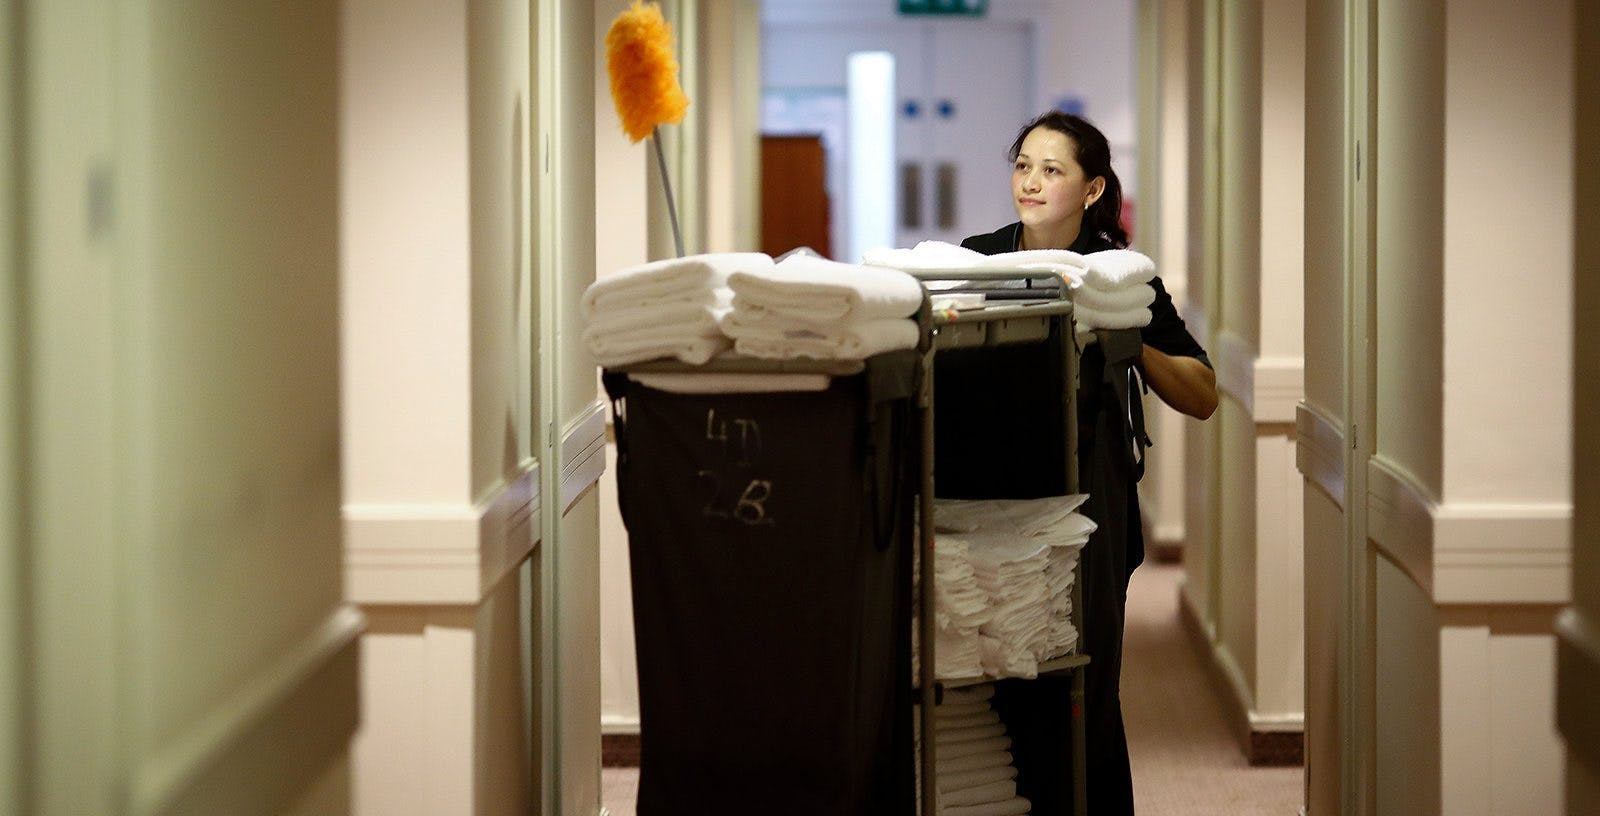 Simple and Professional Hotel Cleaning Services